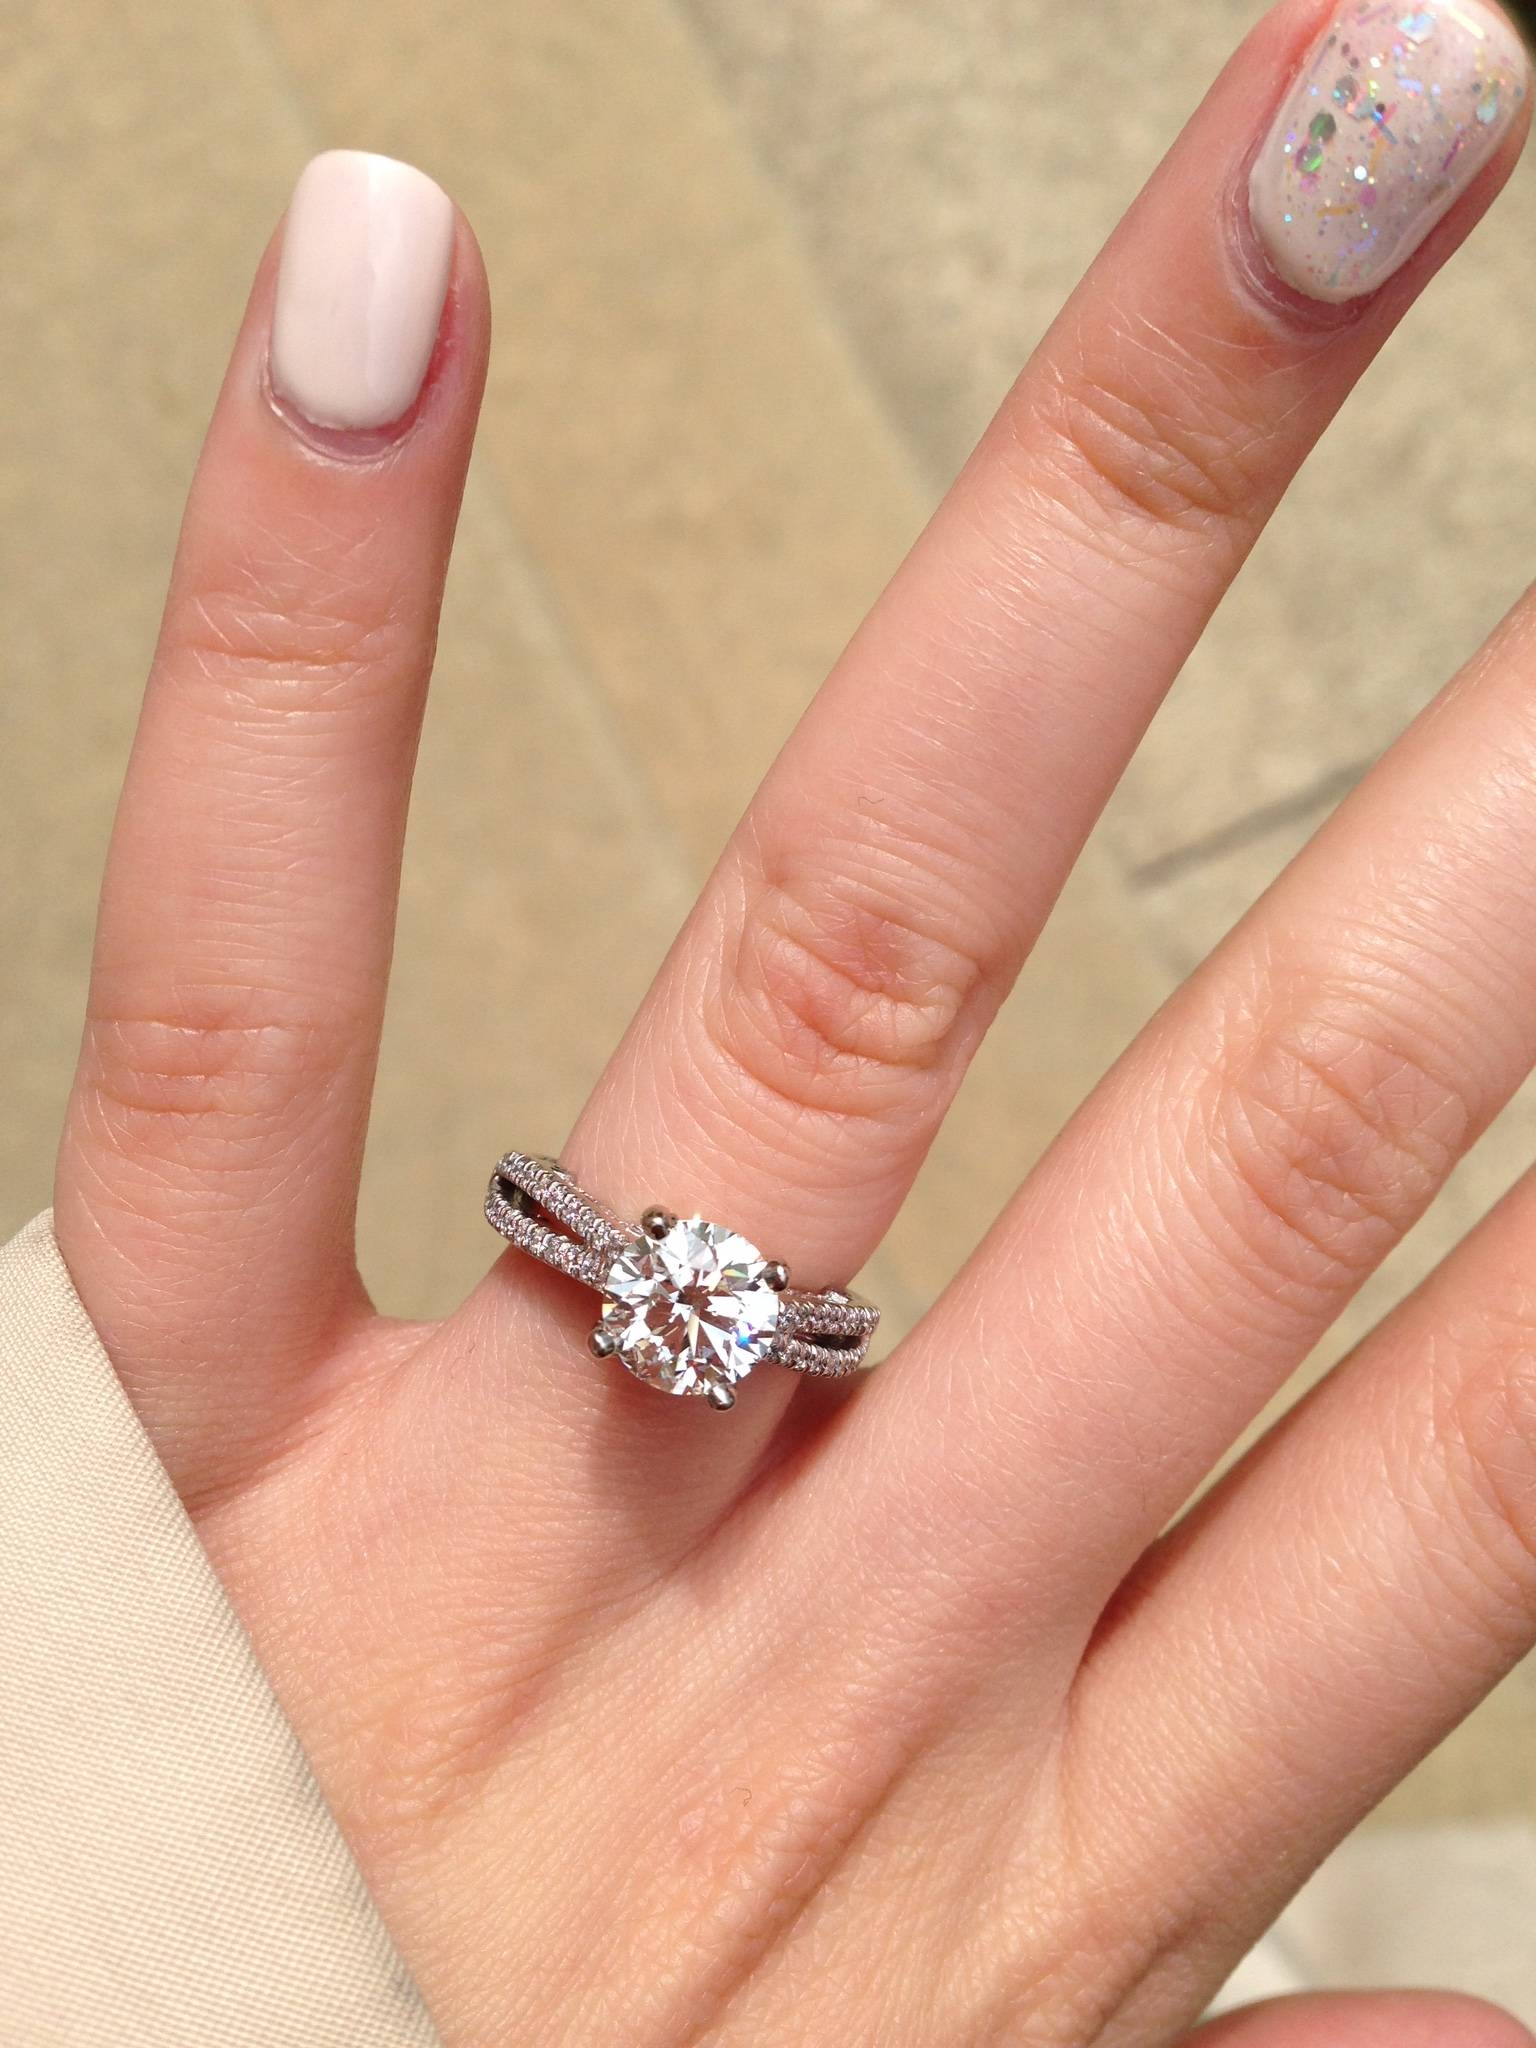 Size 4 Fingers Please Post Your Rings =) – Weddingbee Within Size 4 Diamond Engagement Rings (View 13 of 15)